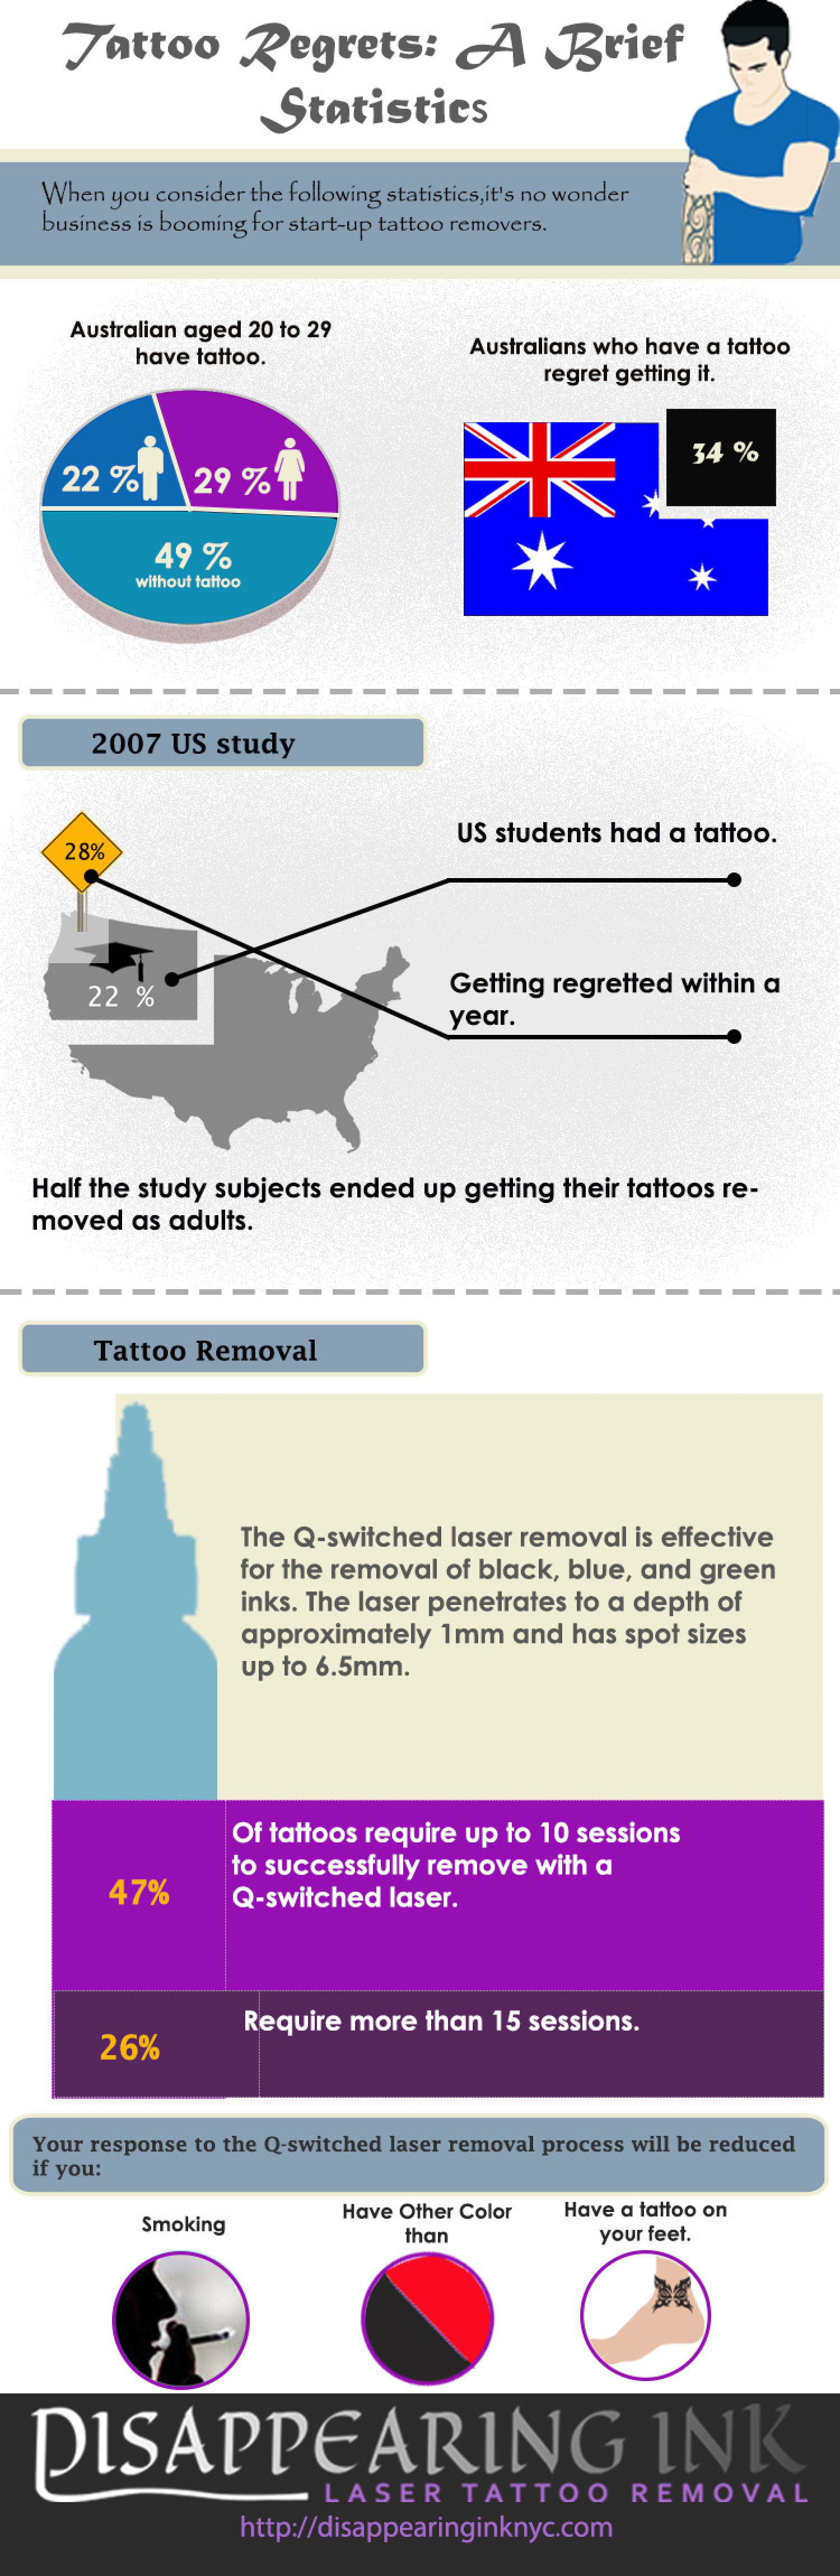 Tattoo Regrets: A Brief Statistics Infographic